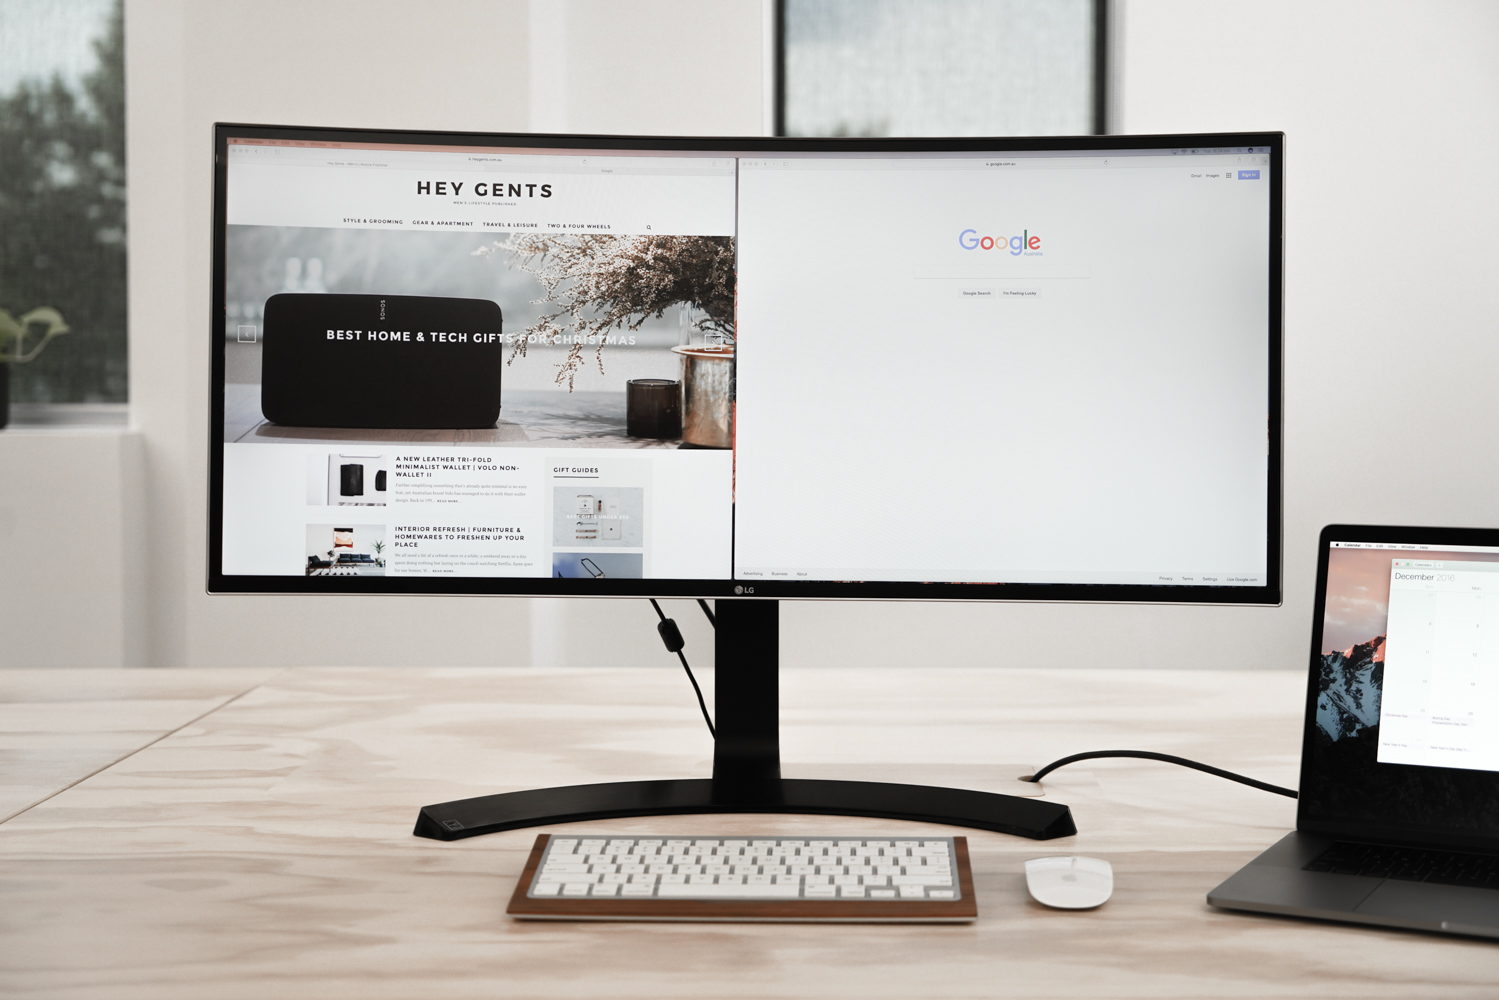 LG Curved UltraWide Monitor Review | Super Smooth and Crystal Clear